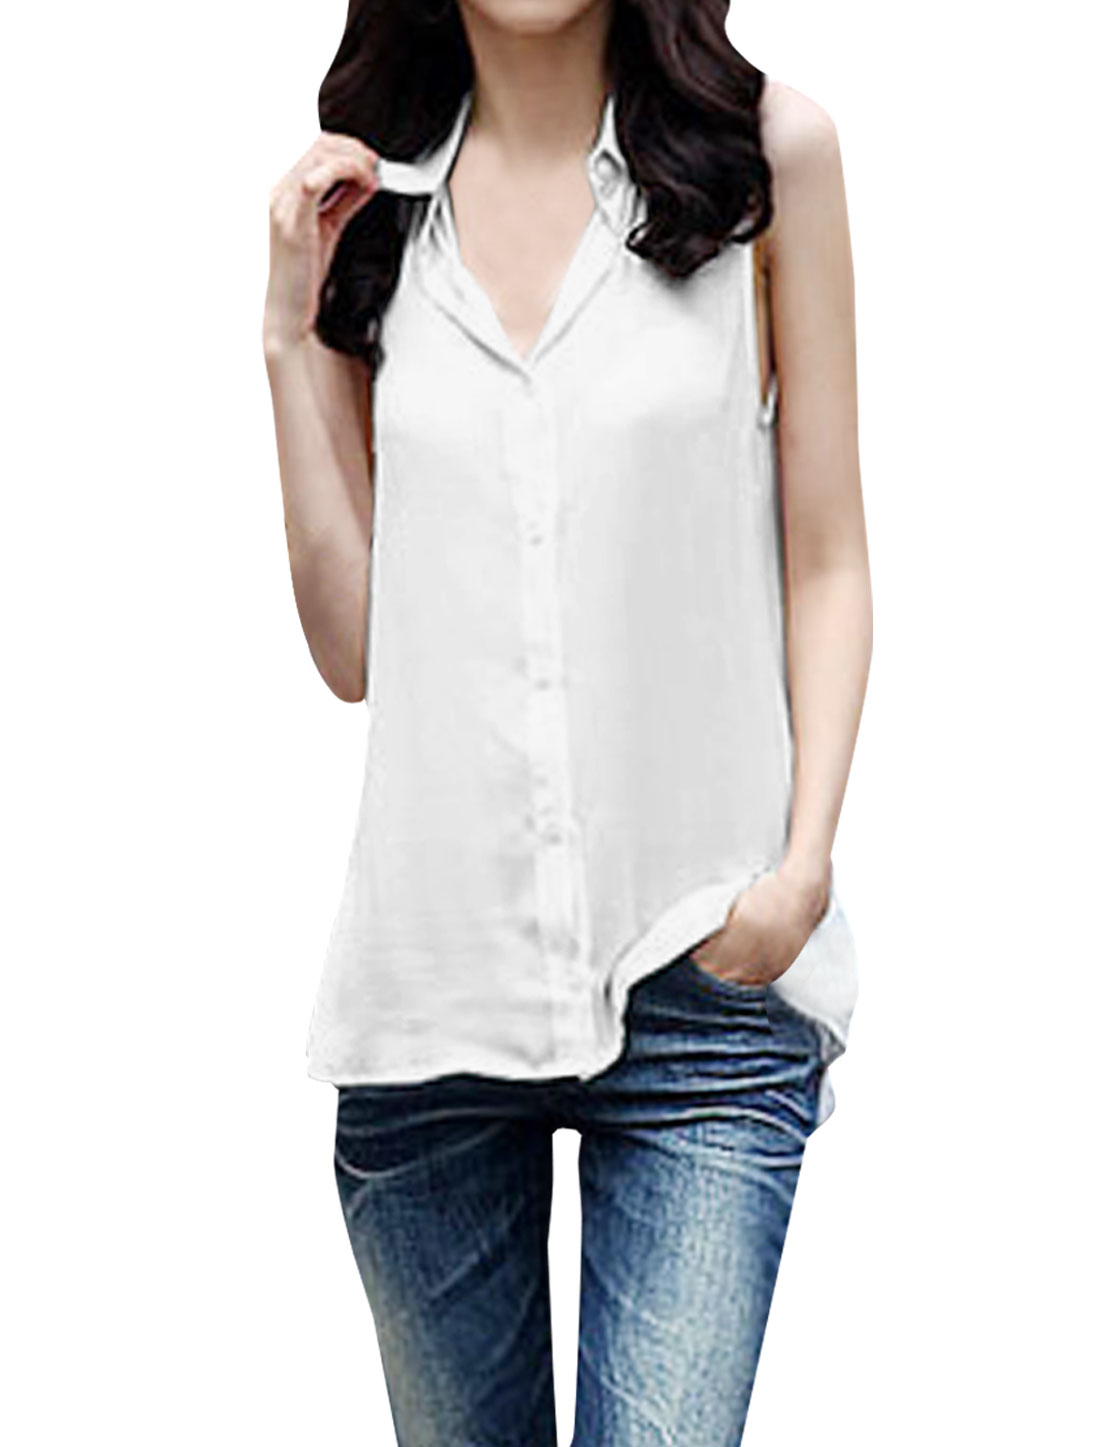 Ladies Point Collar Button Up Sleeveless Semi Sheer Top Shirt White XS